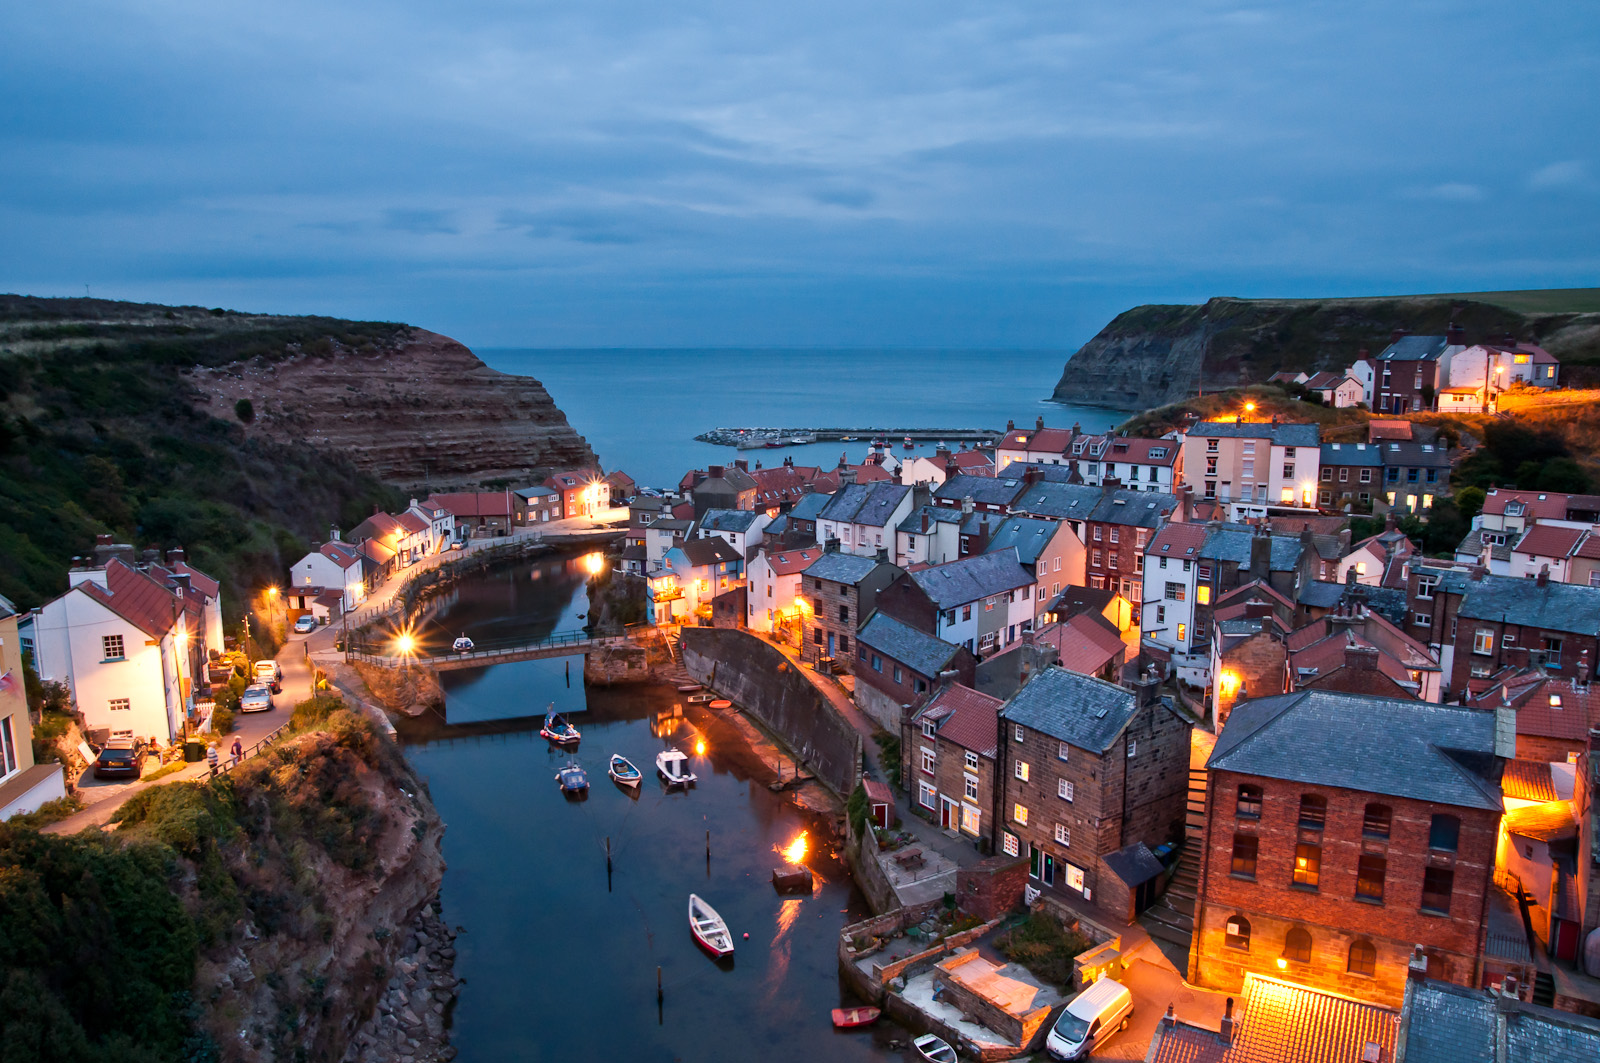 Fishing Boat Wallpaper Hd Staithes Village In England Thousand Wonders